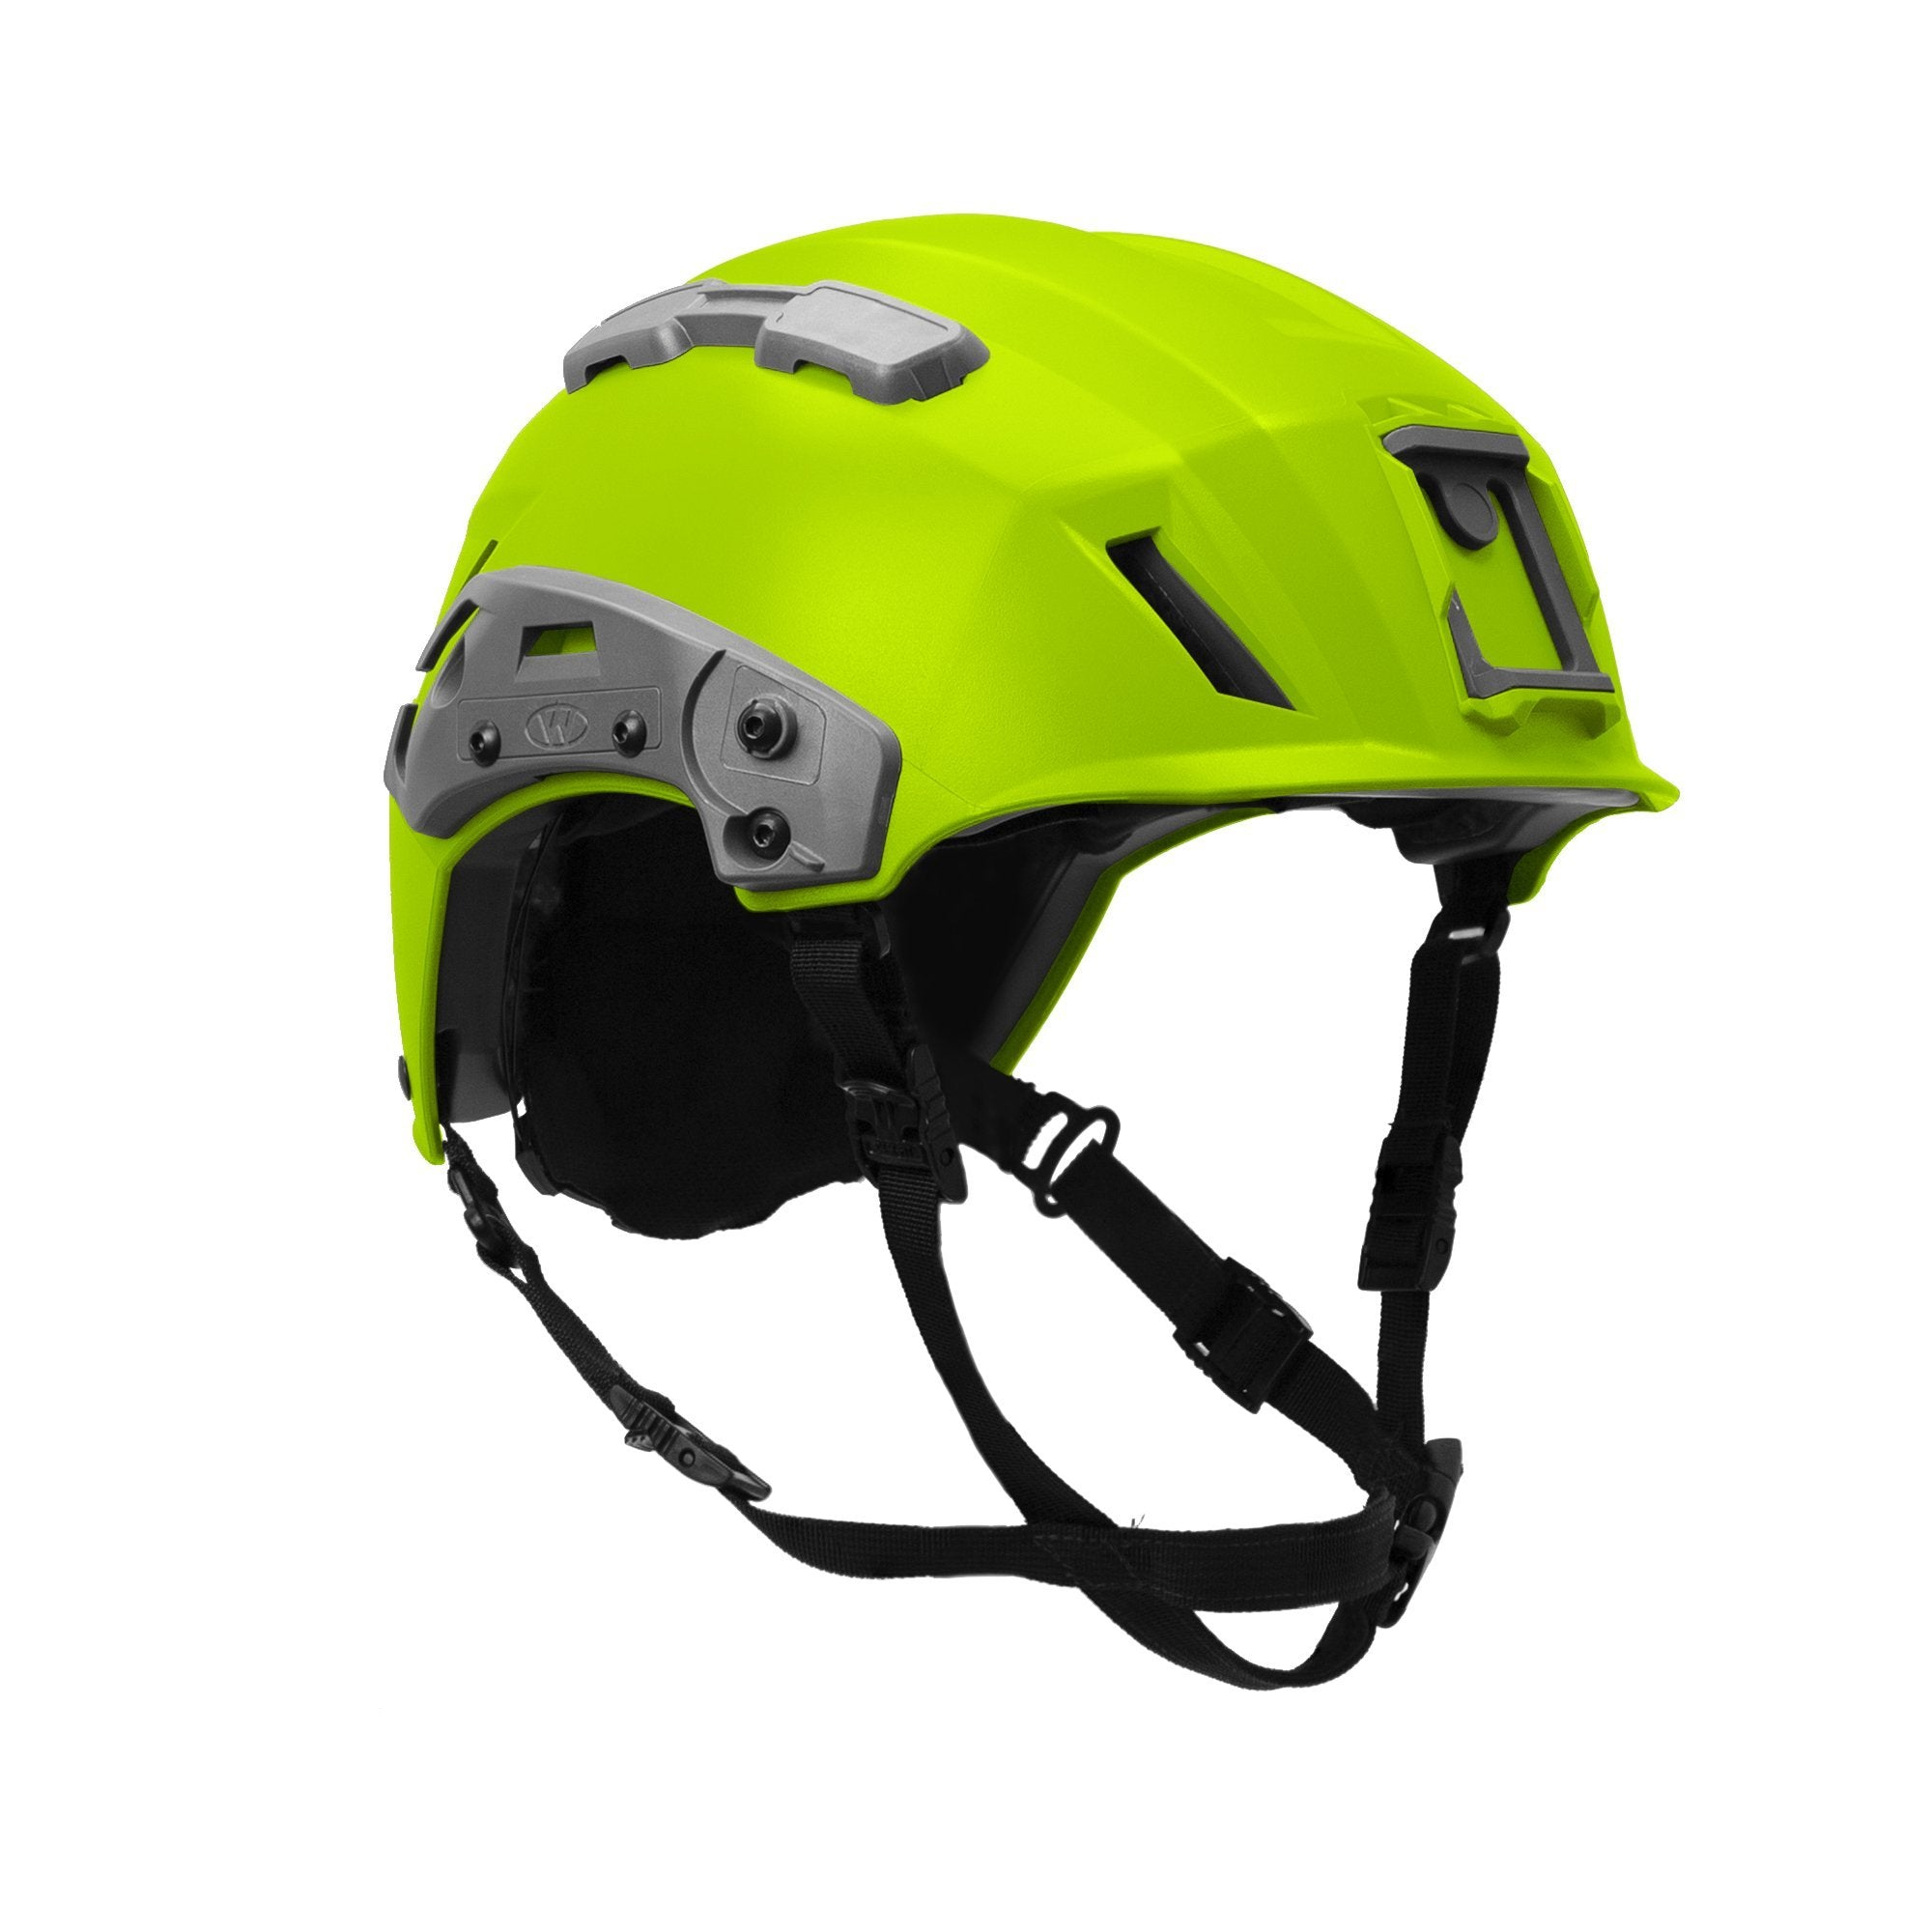 Team Wendy Helm EXFIL® SAR Tactical HI-VIZ Grün